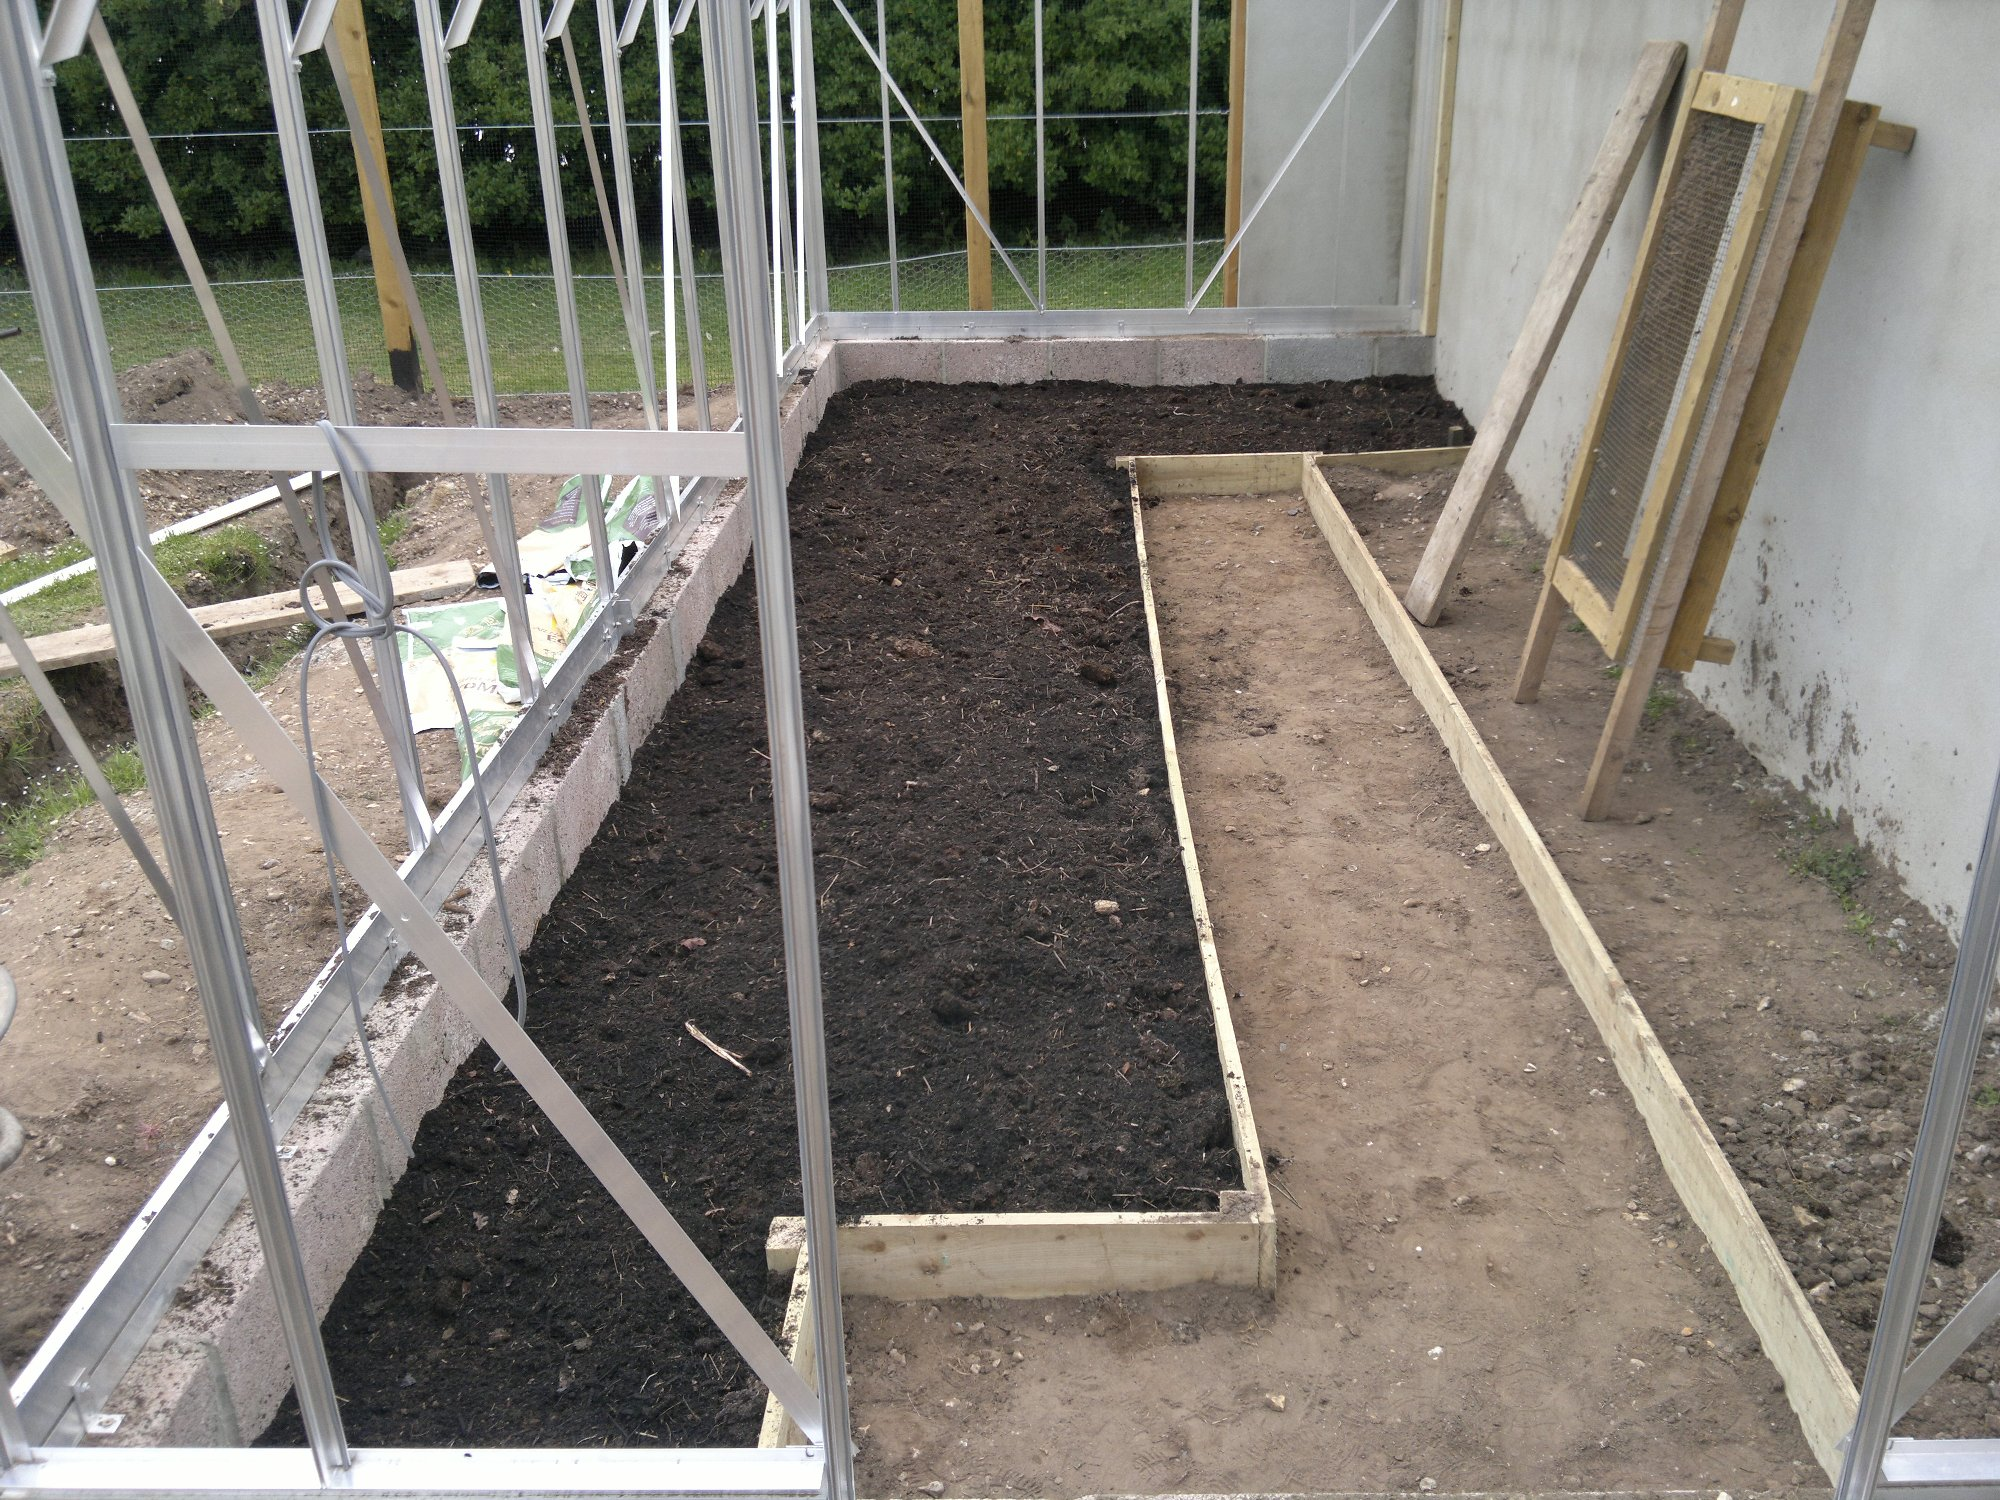 Bed finished with more manure and composted green waste